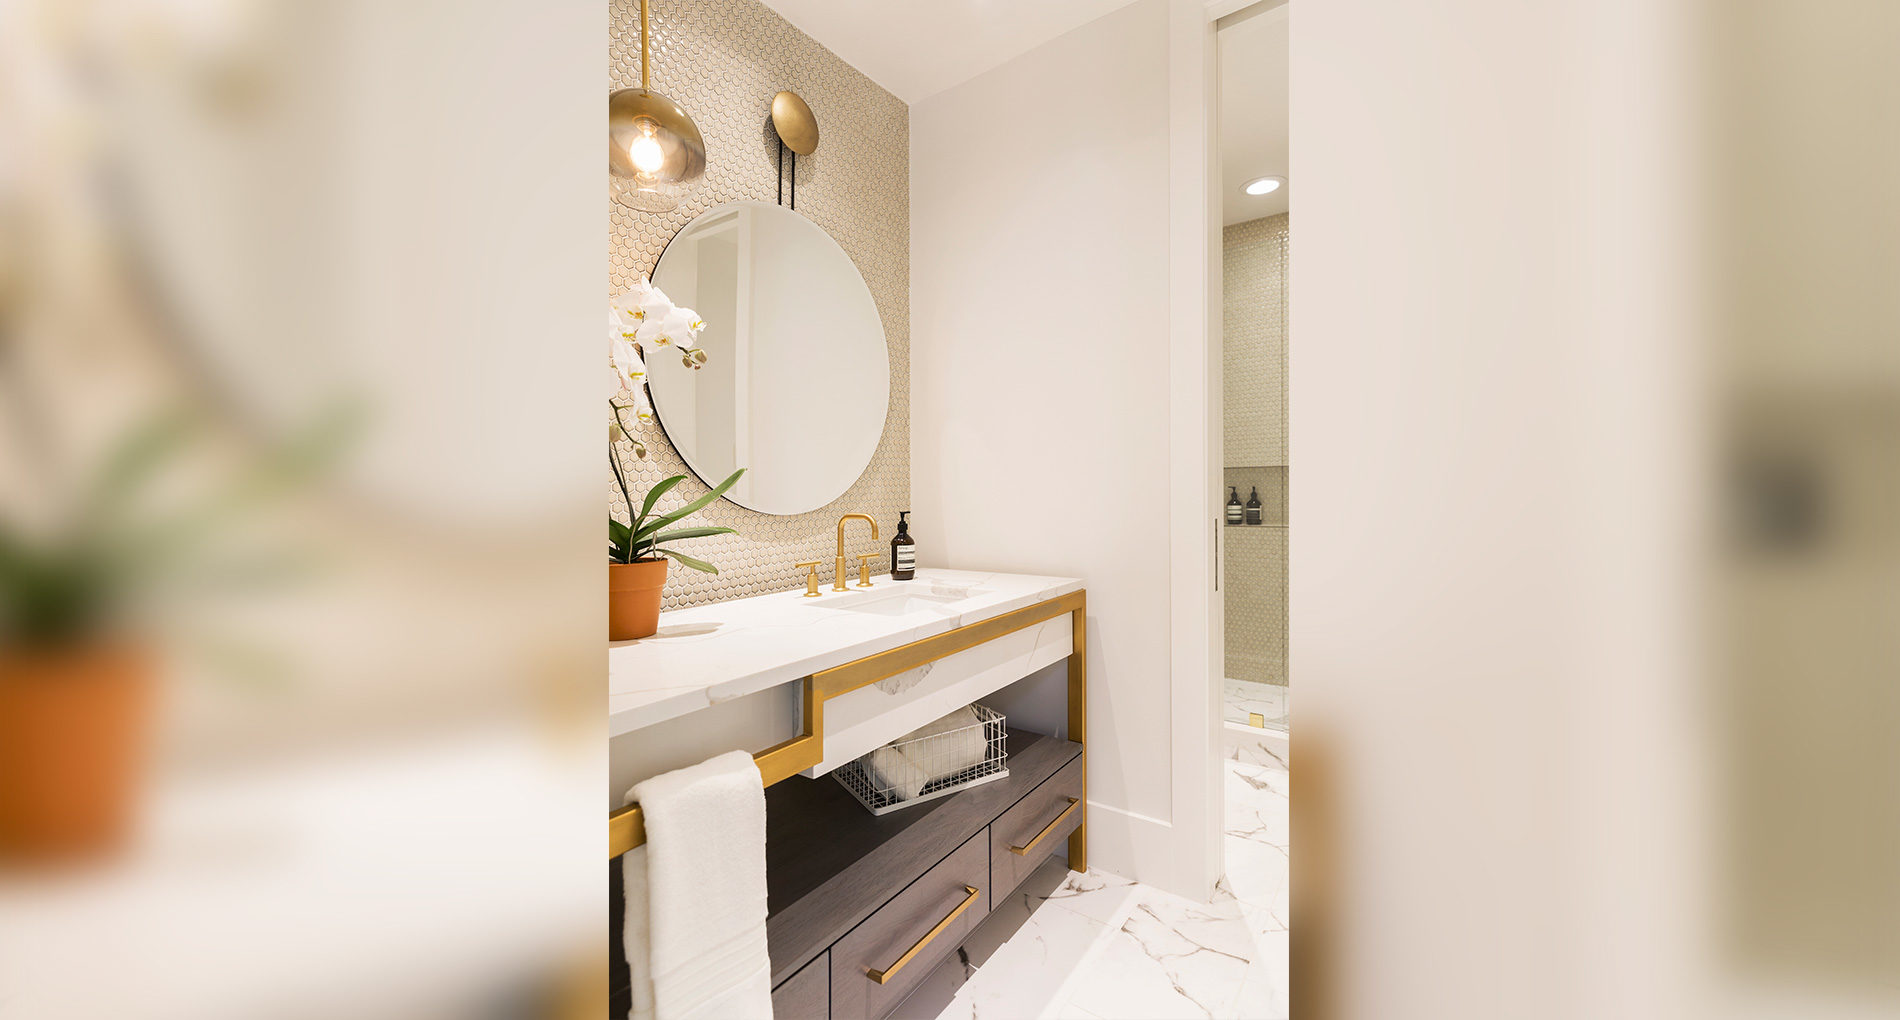 Bathroom Renovation Dallas Slider